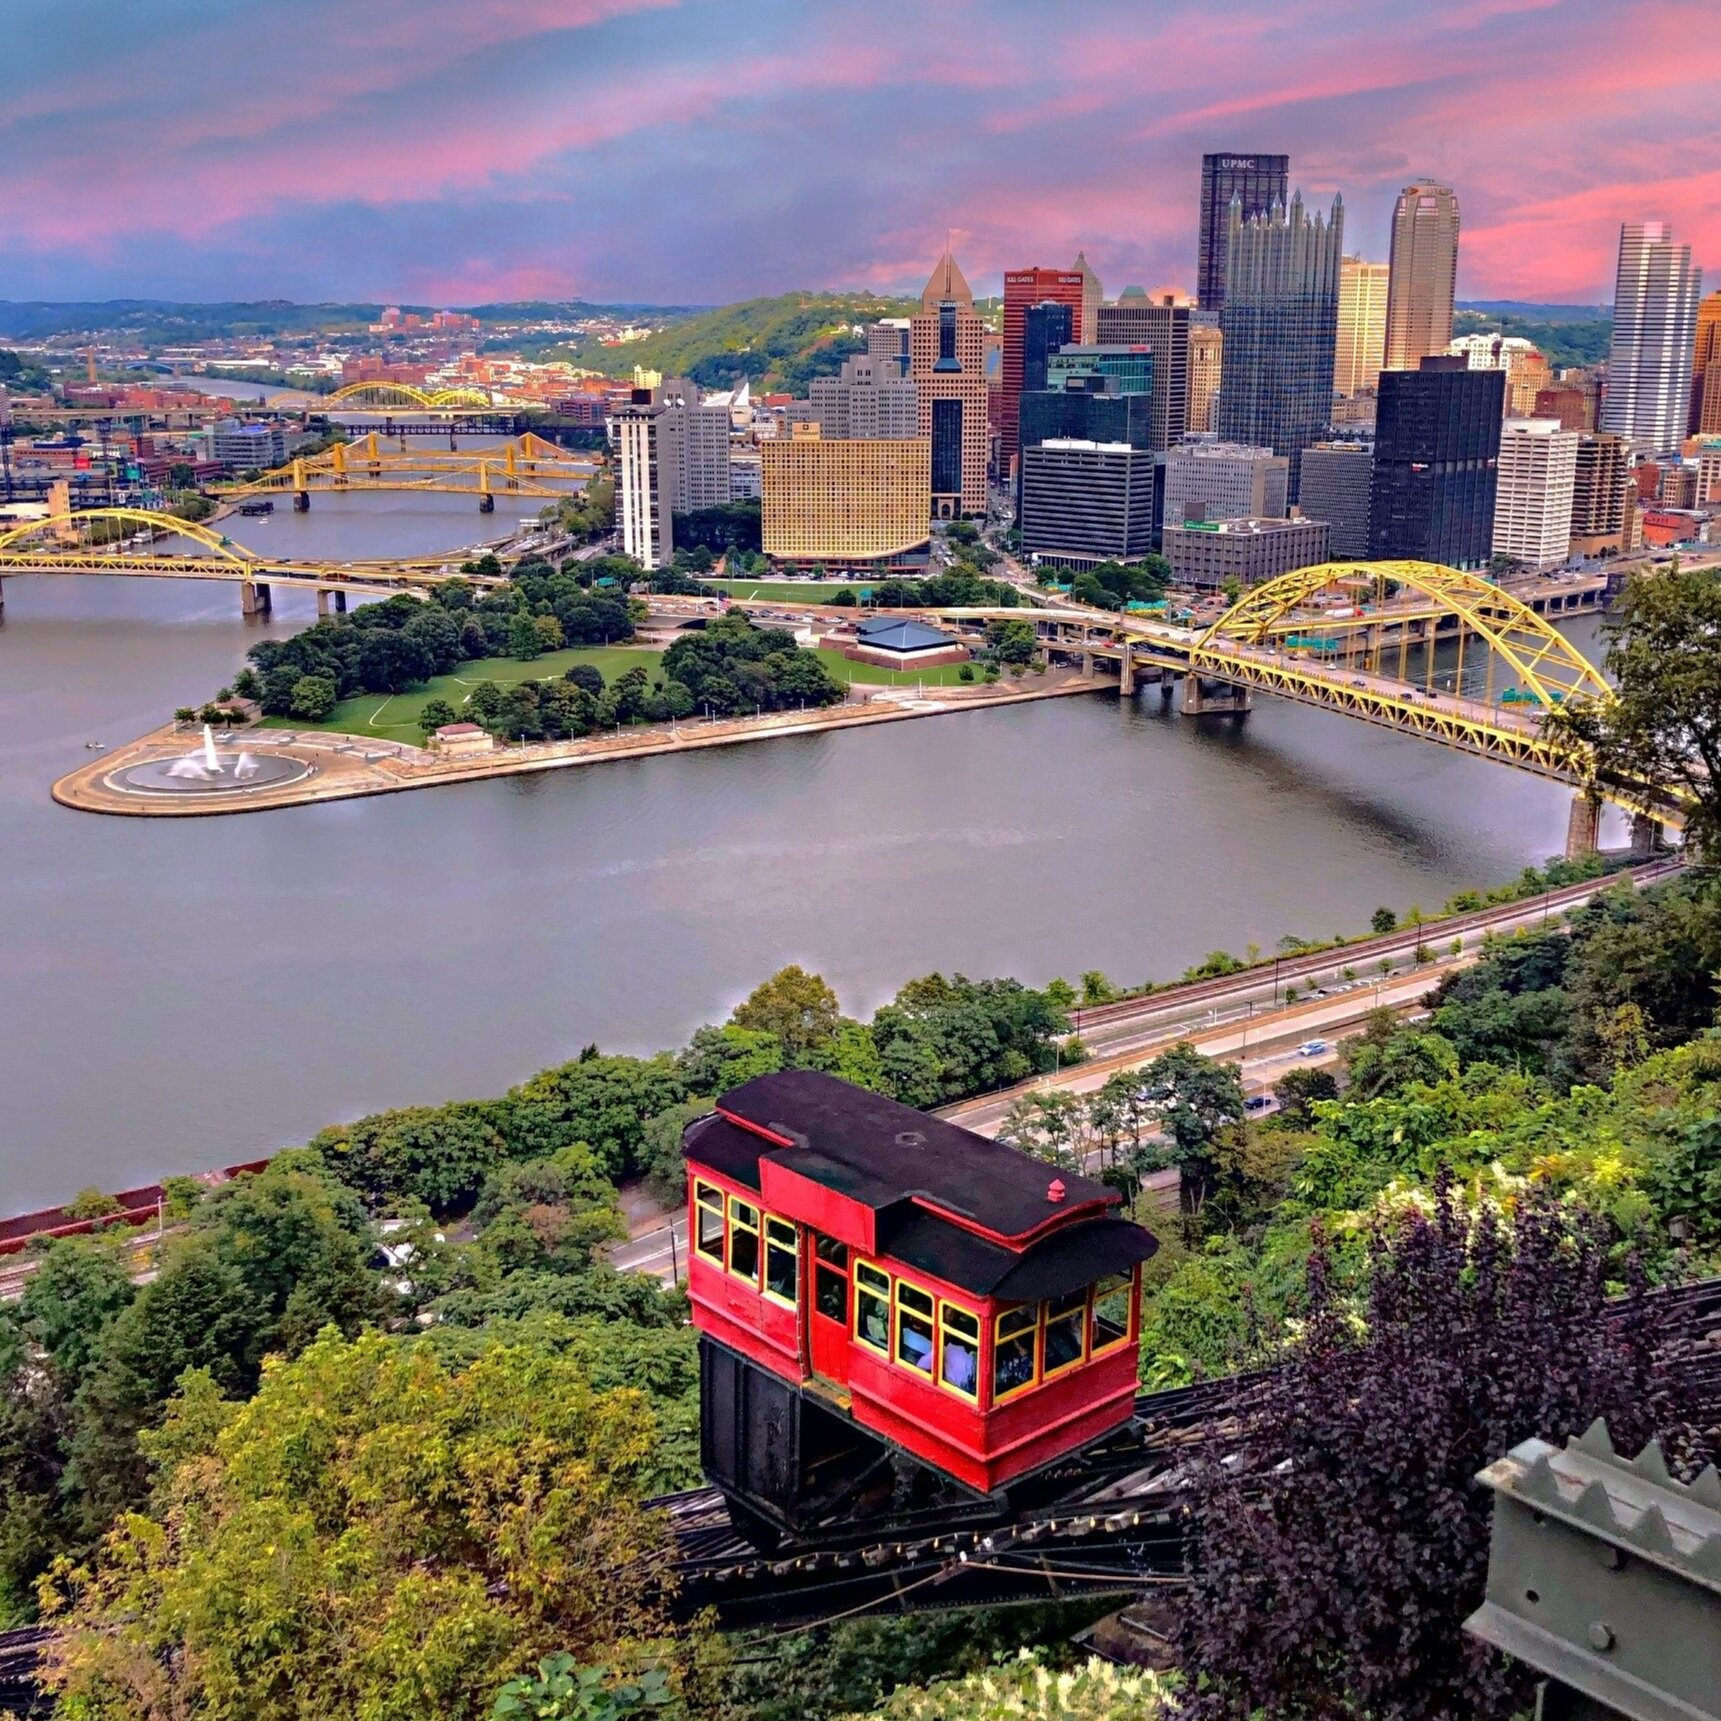 WHY PITTSBURGH - Pittsburgh is the birth place of robotics. From Carnegie Mellon University paving the way to strong industry players, Pittsburgh is no longer up-and-coming - instead, the city is driving the future of robotics. We're the 5th best city for STEM graduates (based on median wage growth among other factors), one of the best cities for first time homebuyers, one of the most welcoming cities, one of the top five places to start a robotics company, and more. Join us to continue building Pittsburgh's reputation as a leader in robotics.